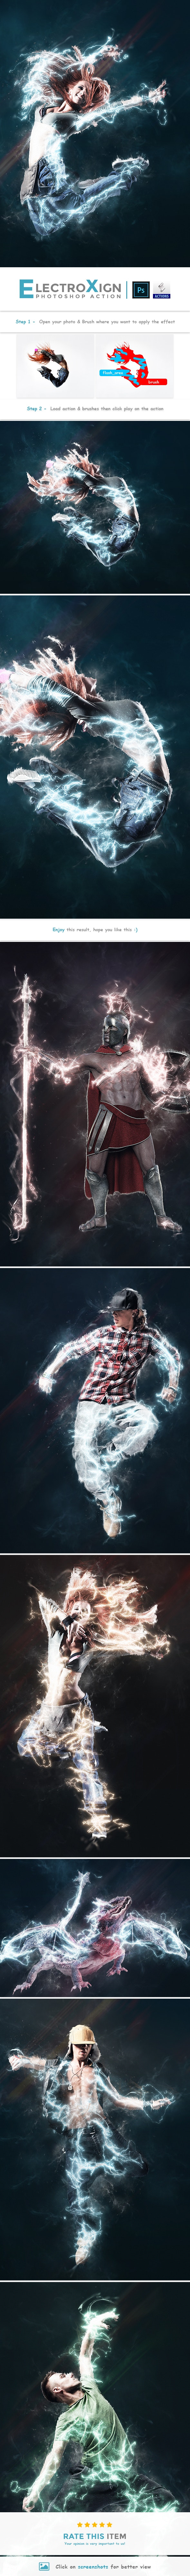 ElectroXign | PS Action - Photo Effects Actions